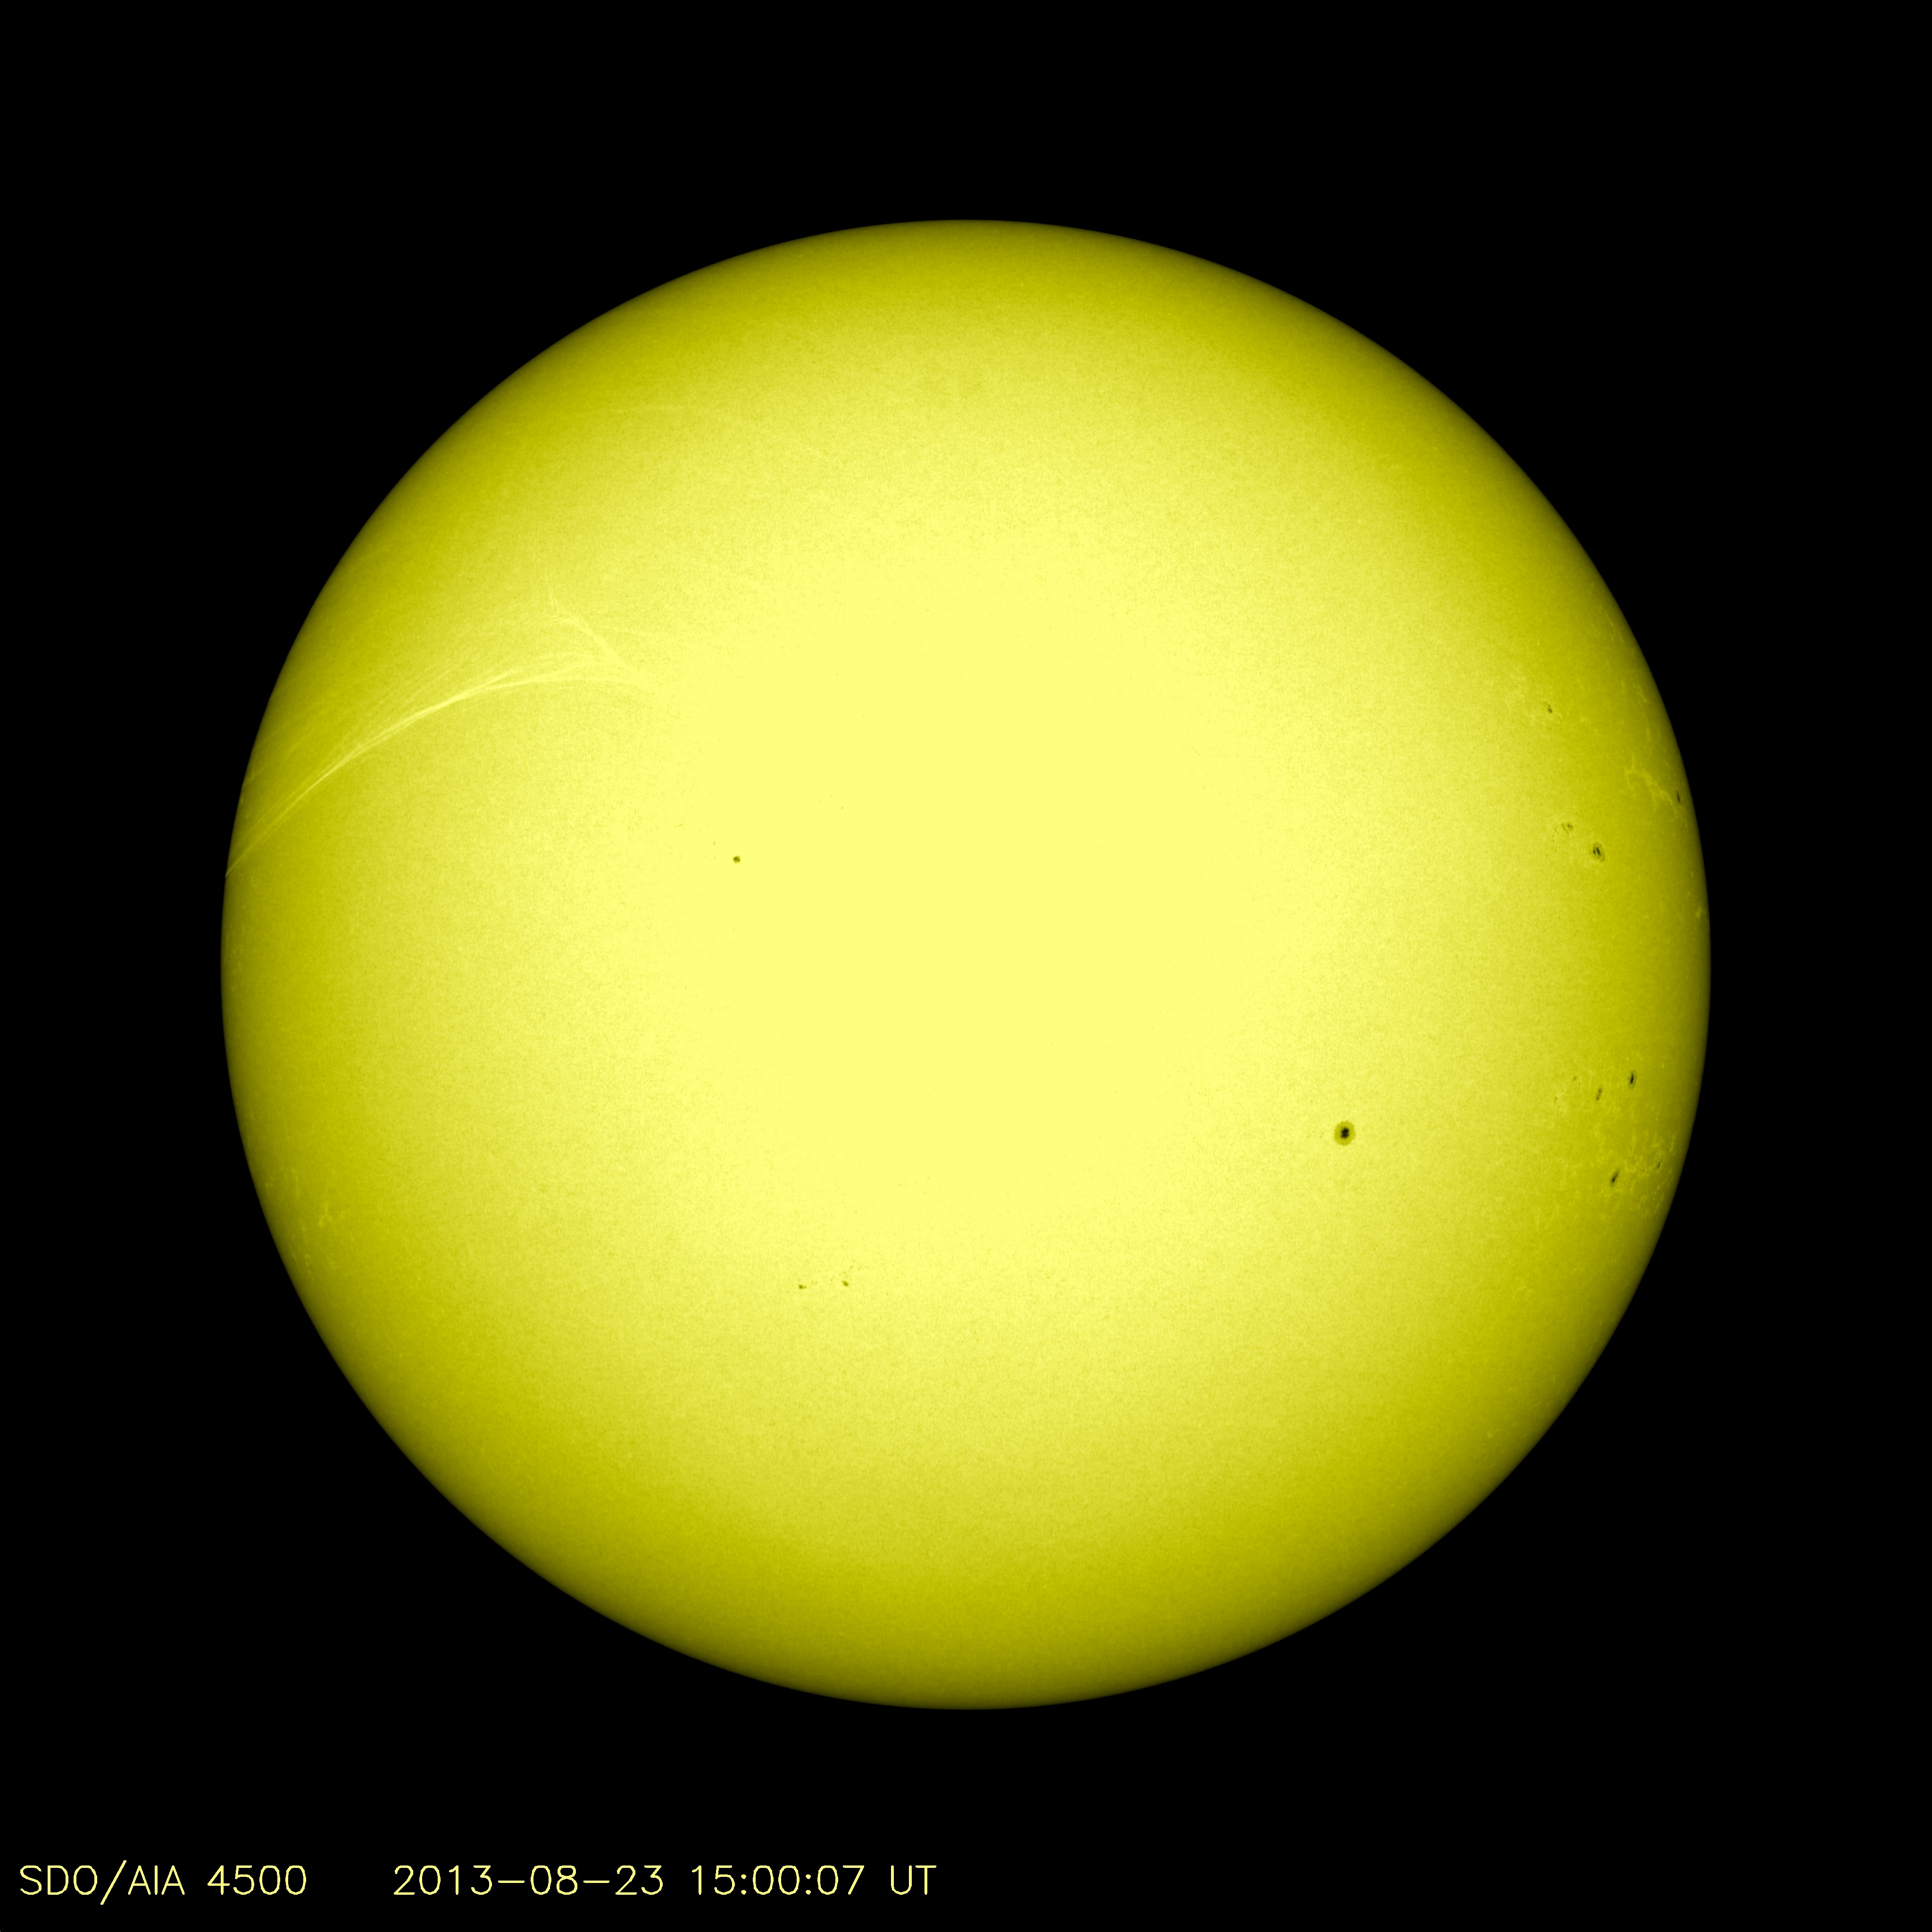 This channel shows the features that our eyes would see if we could dim the sun's intensely bright light. This wavelength of light is visible to people as blue-indigo, although here it is shown in yellow. Sunspots stand out sharply here, and you can also see that the edge of the sun appears darker, a well-known effect called limb darkening.